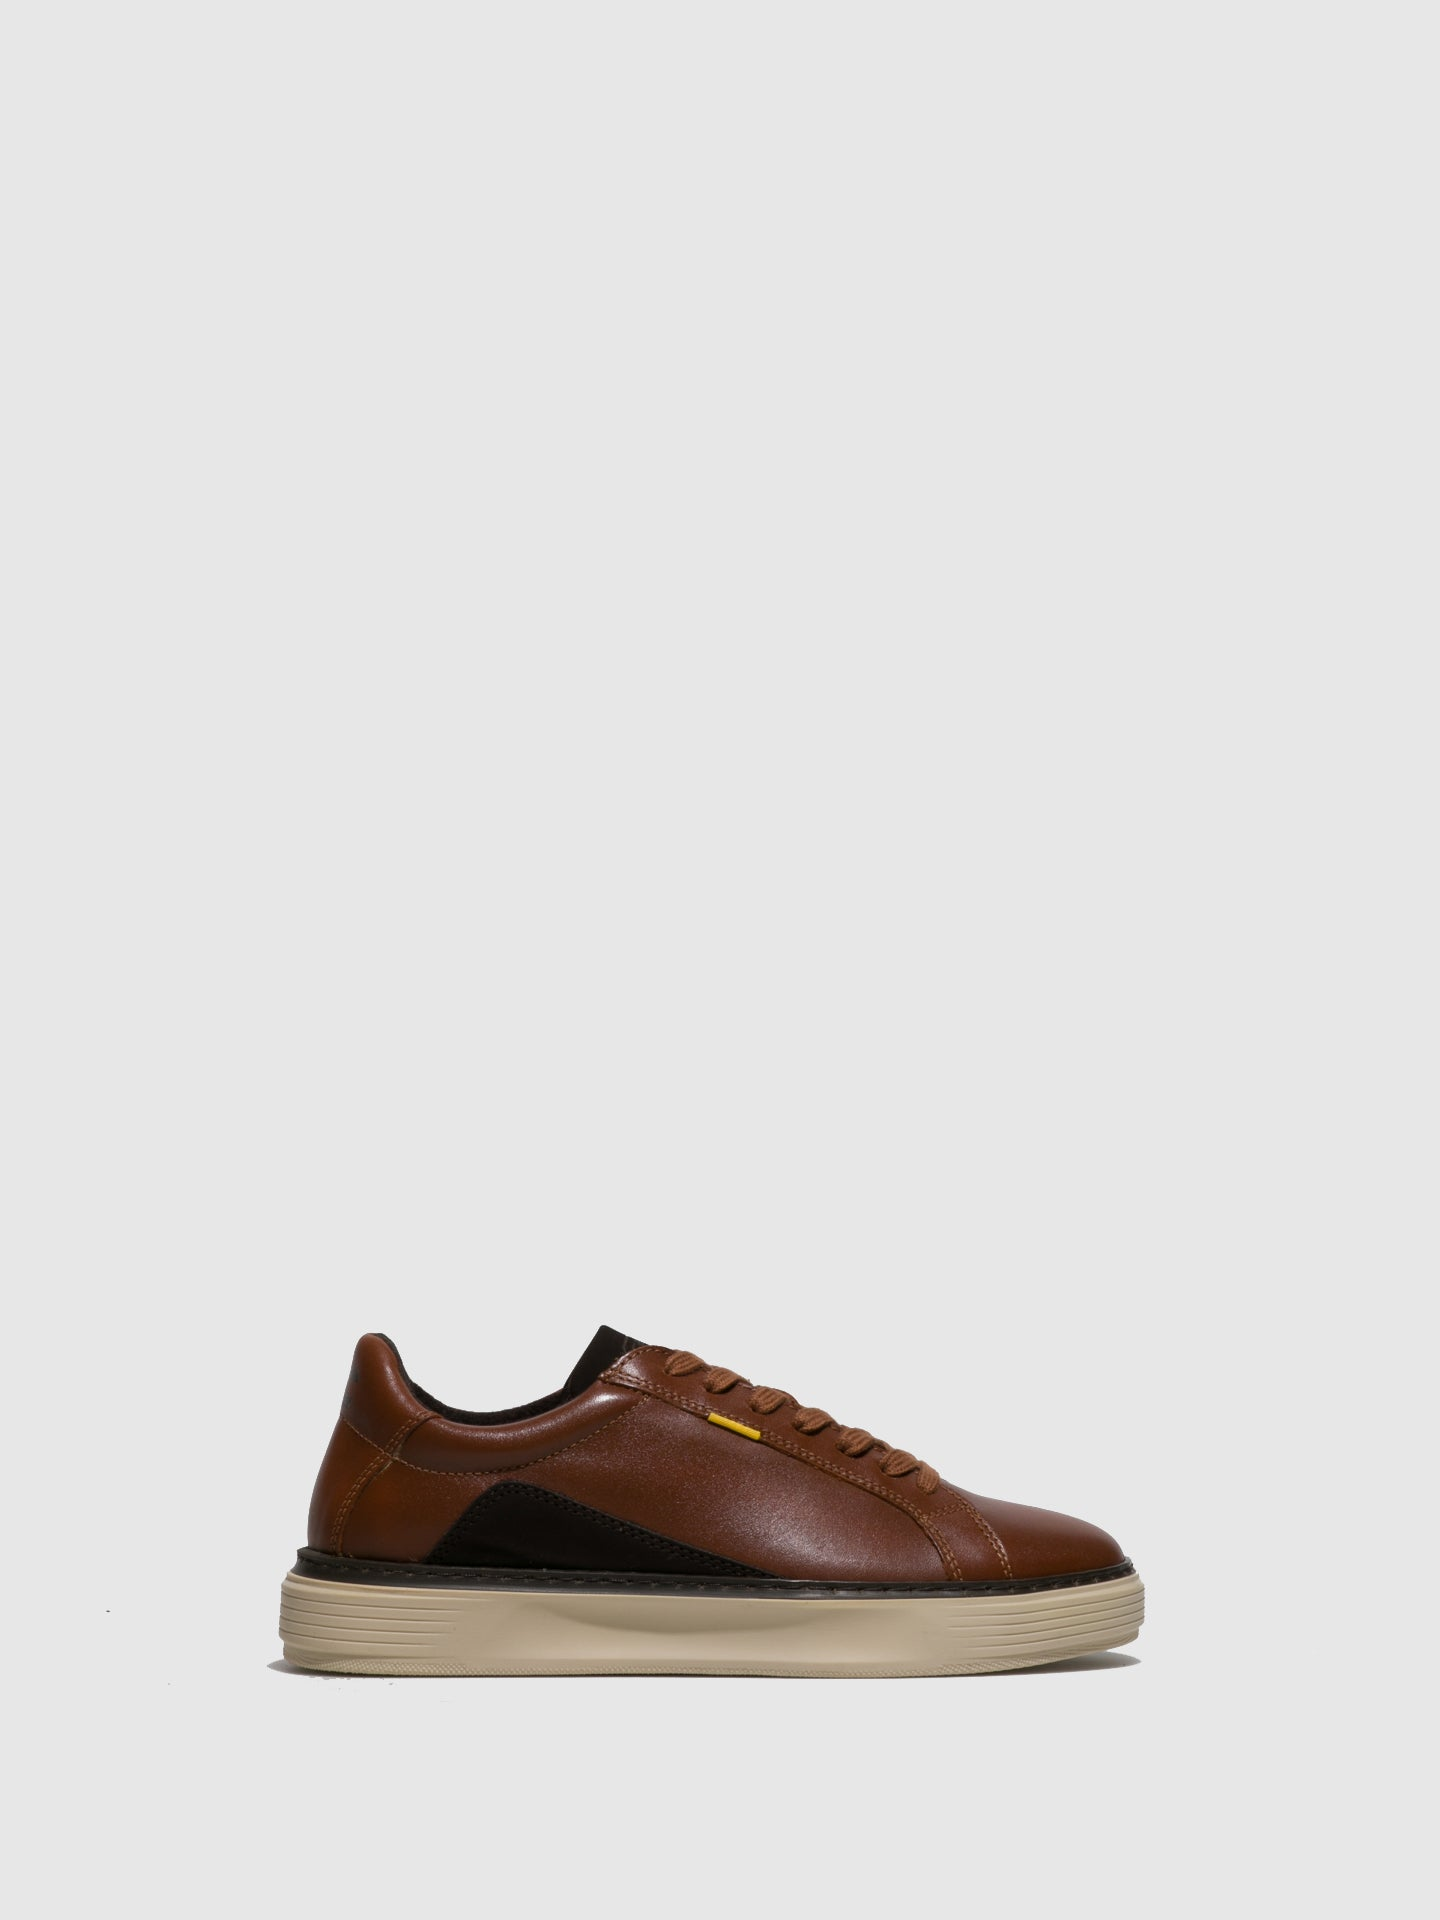 Camel Active Caramel Brown Lace-up Trainers